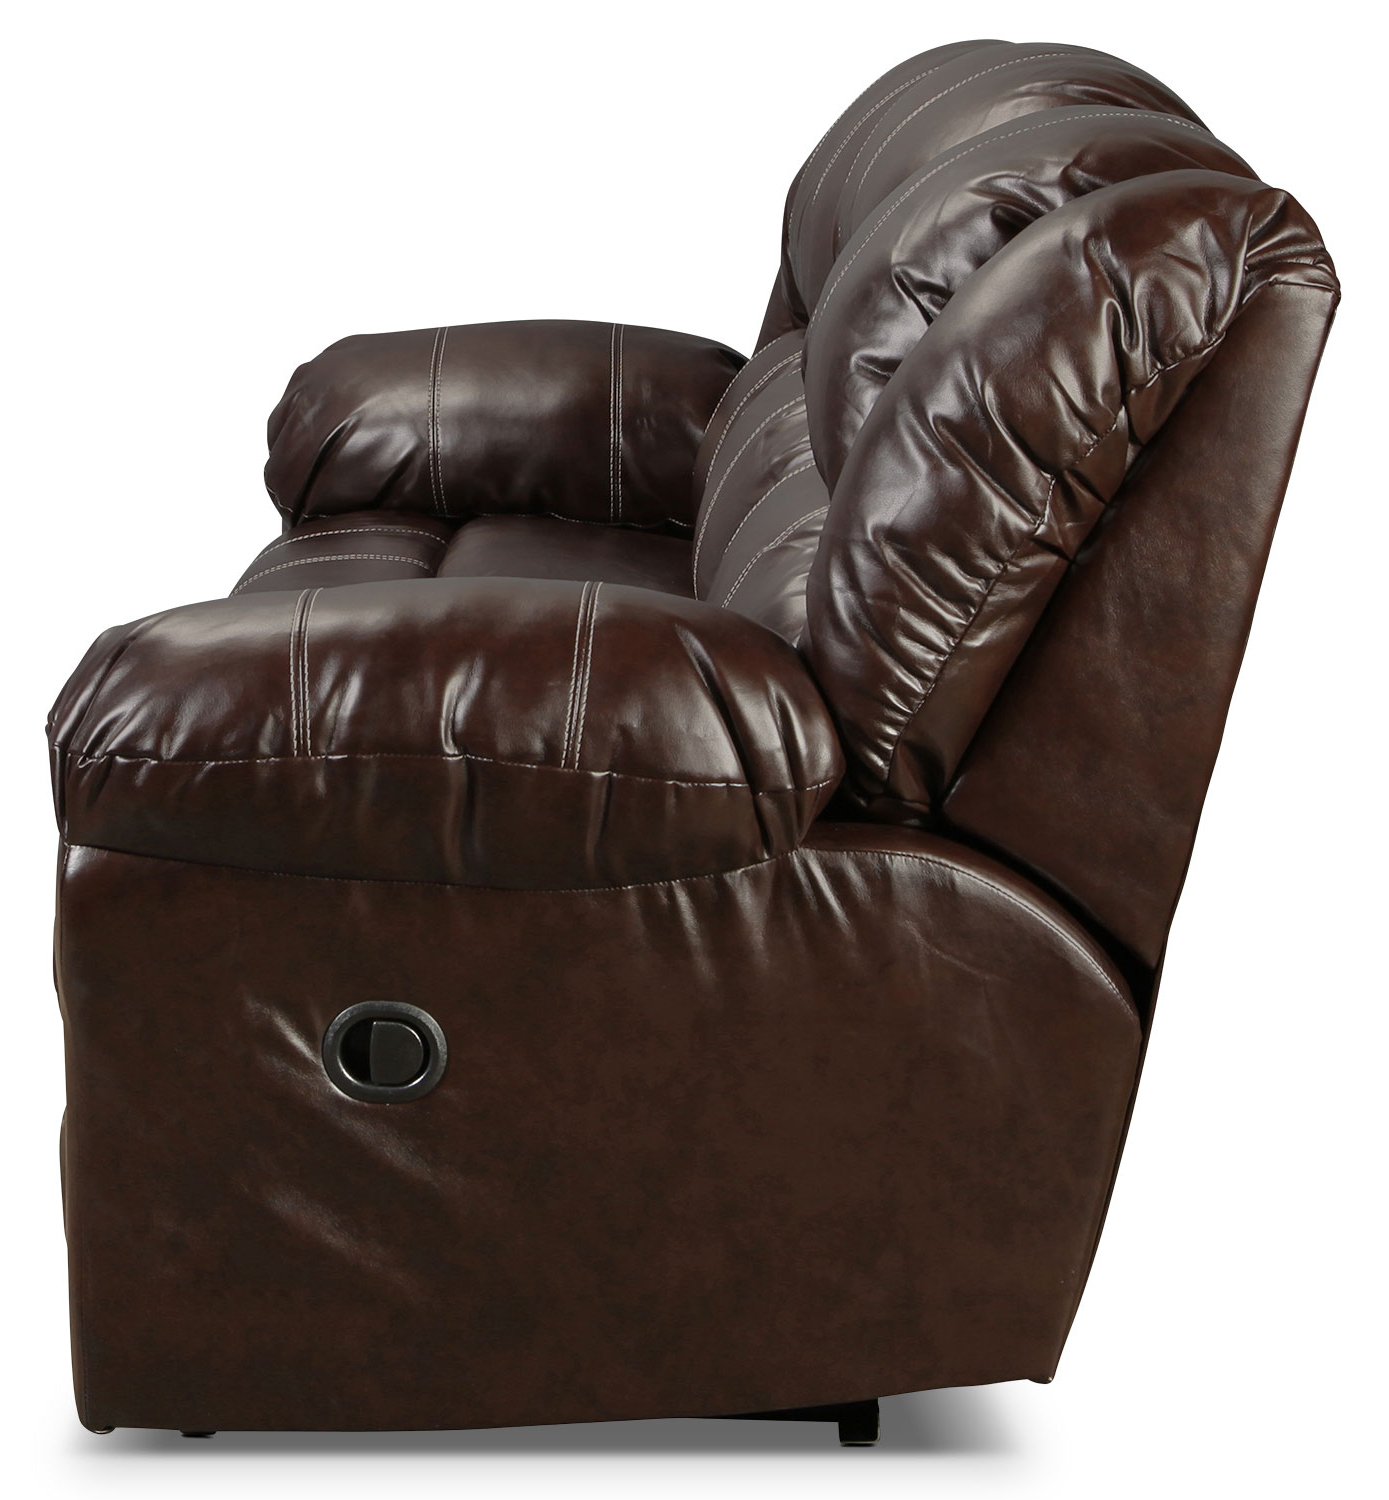 In Widely Used Decker Ii Fabric Swivel Rocker Recliners (Gallery 14 of 20)